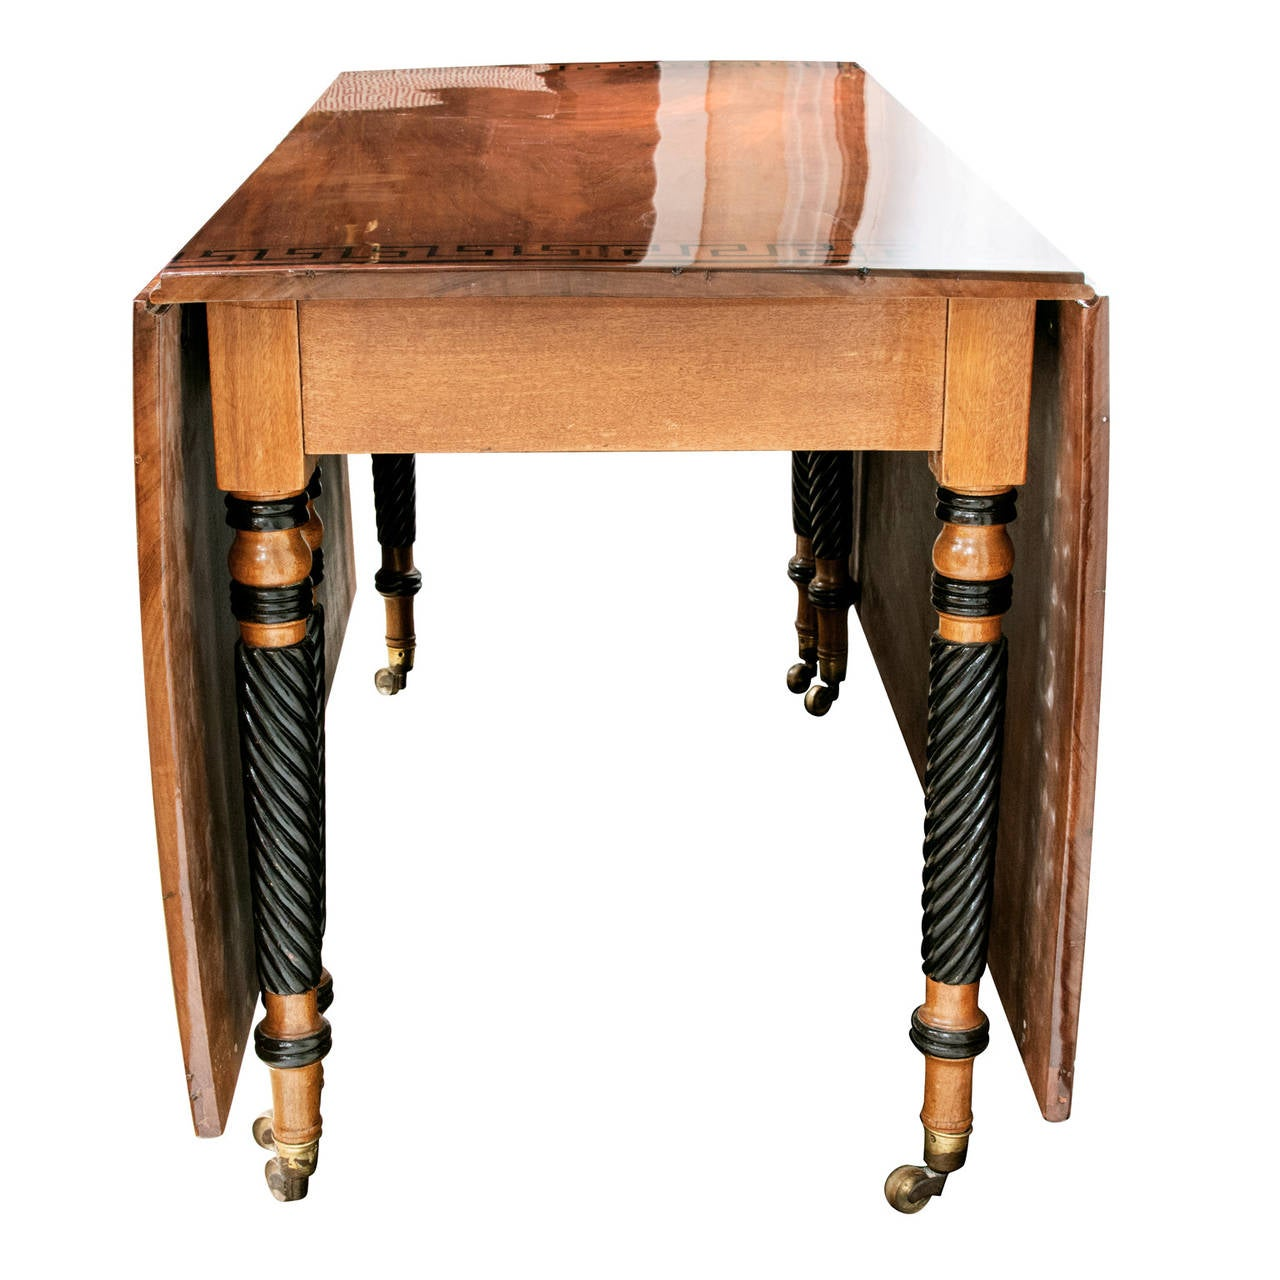 Regency Mahogany Drop-Leaf Table 4